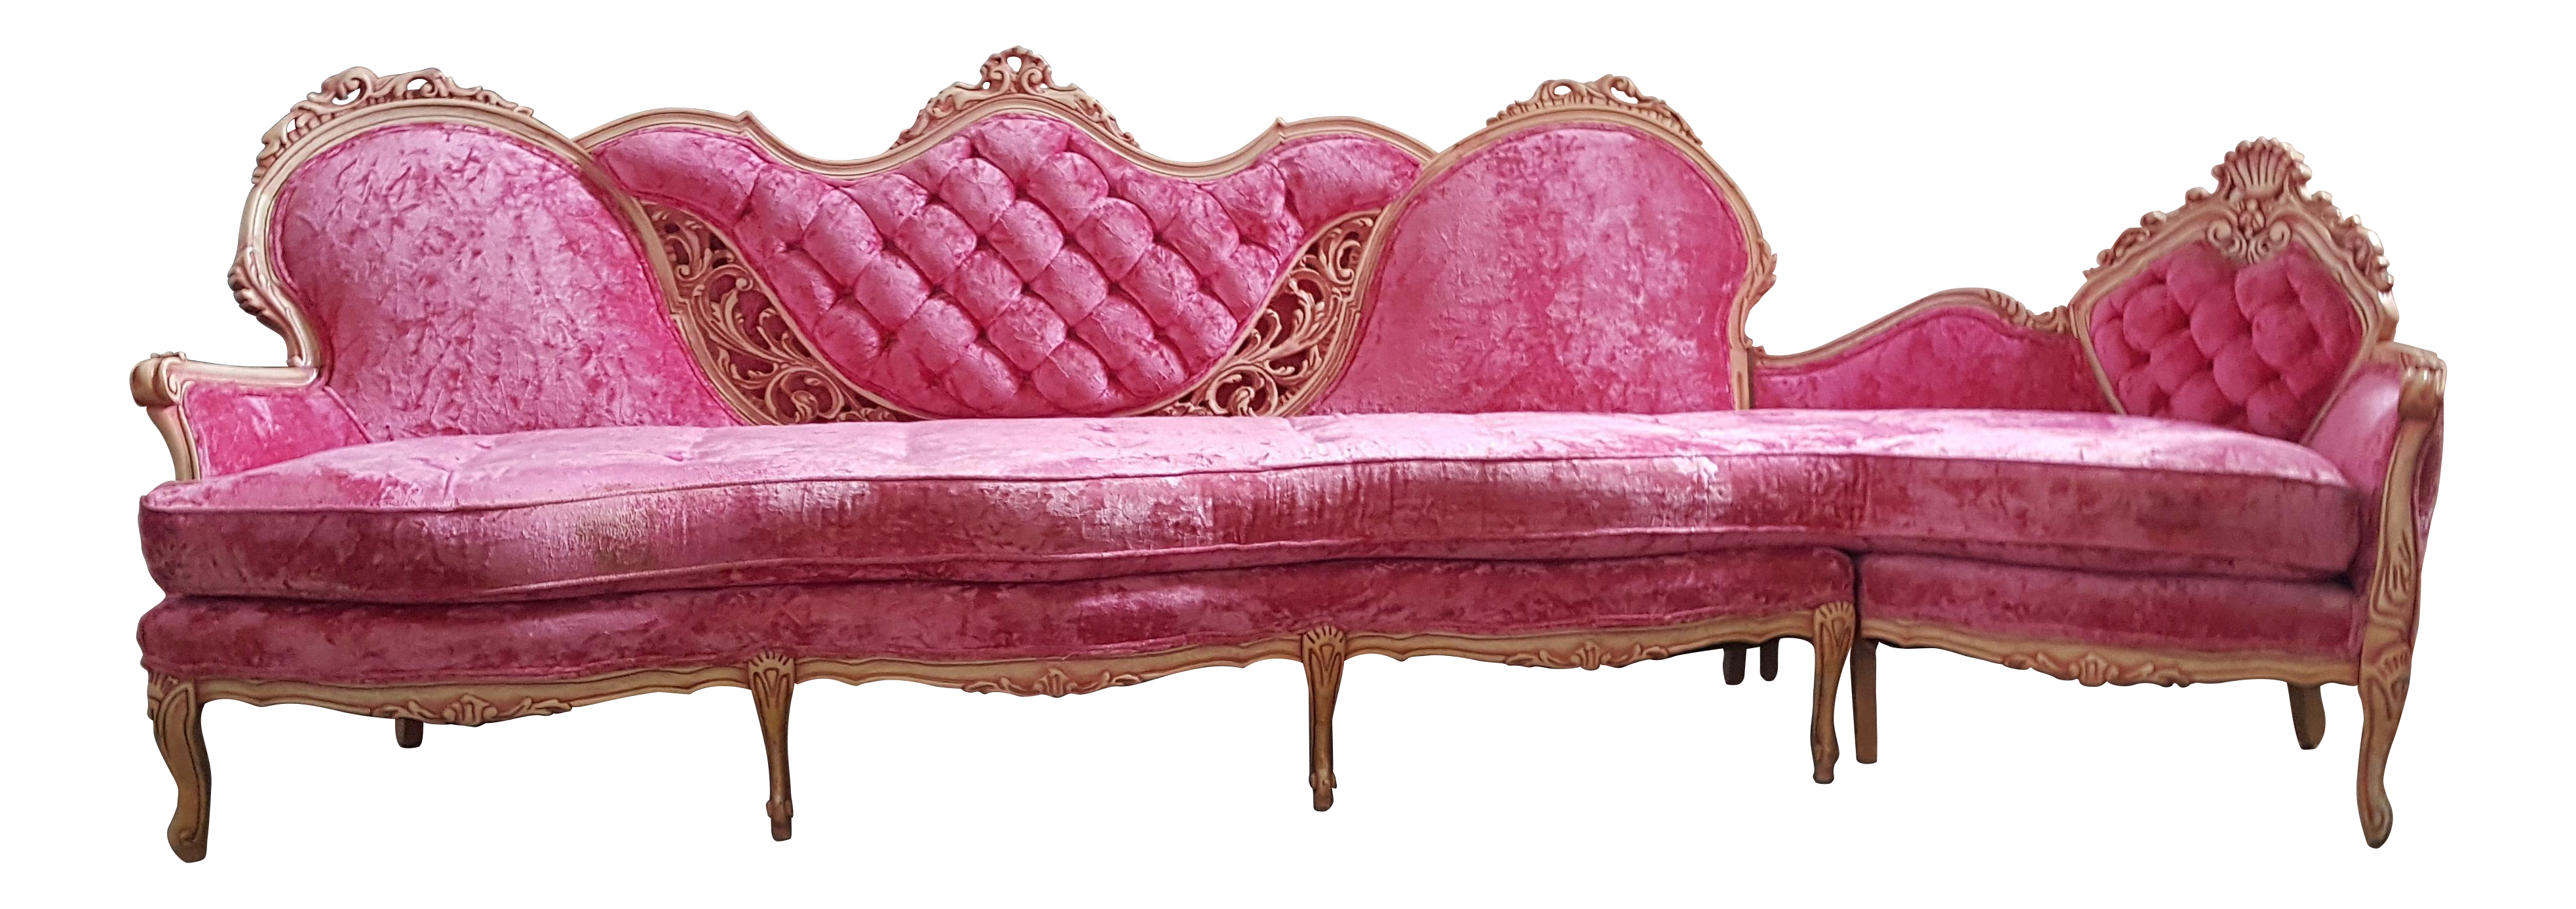 Pink couch png. Vintage french provincial velvet